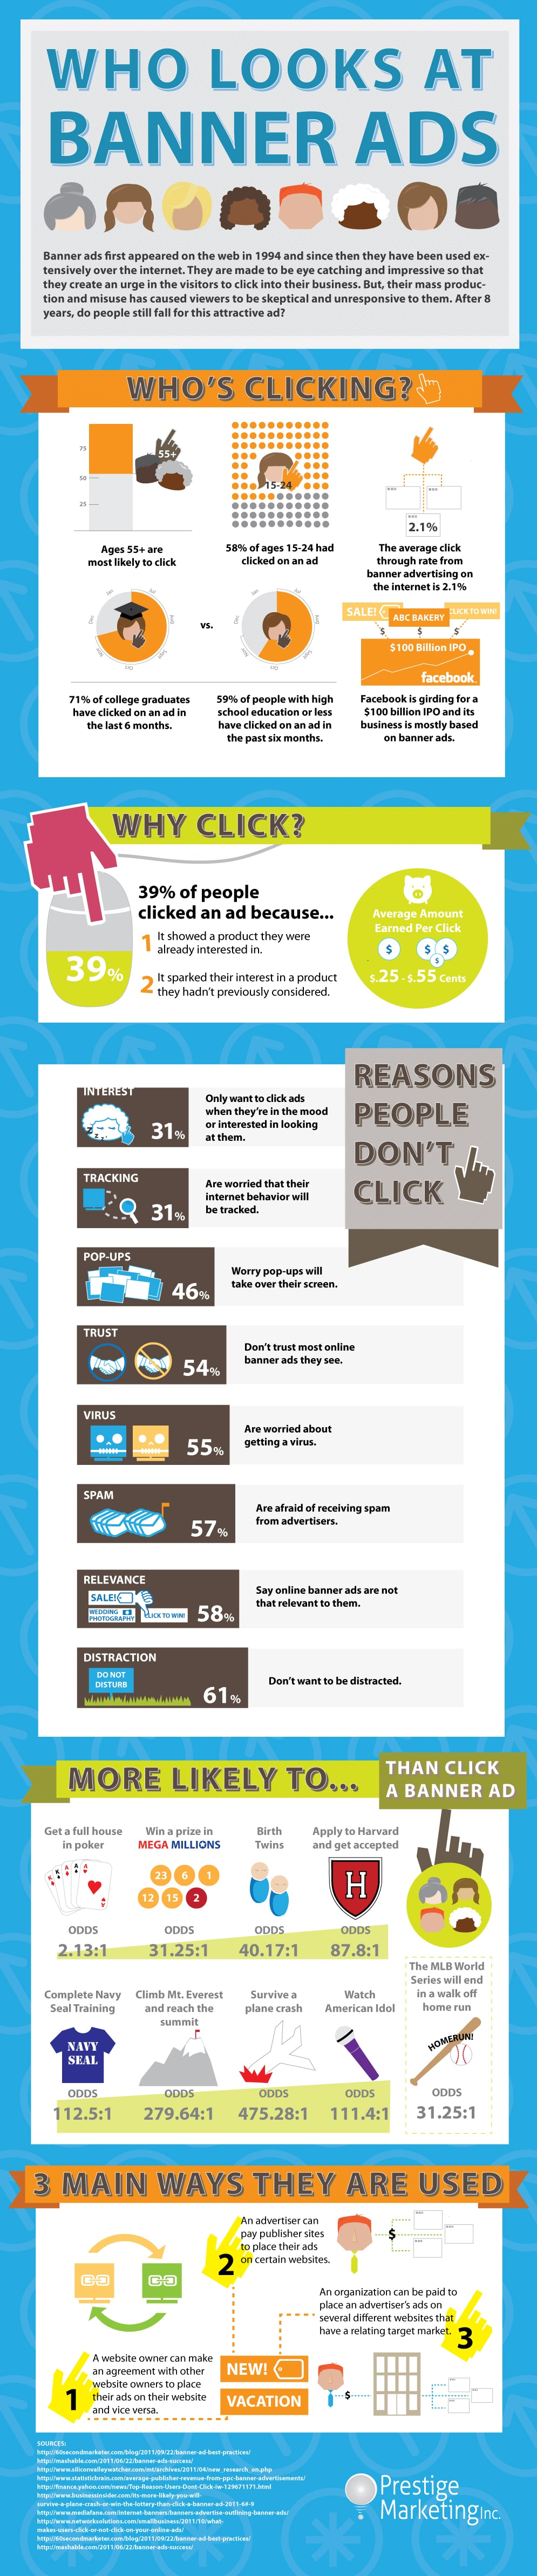 Science Behind Who Clicks On Your Banner Ads & Why [Infographic]